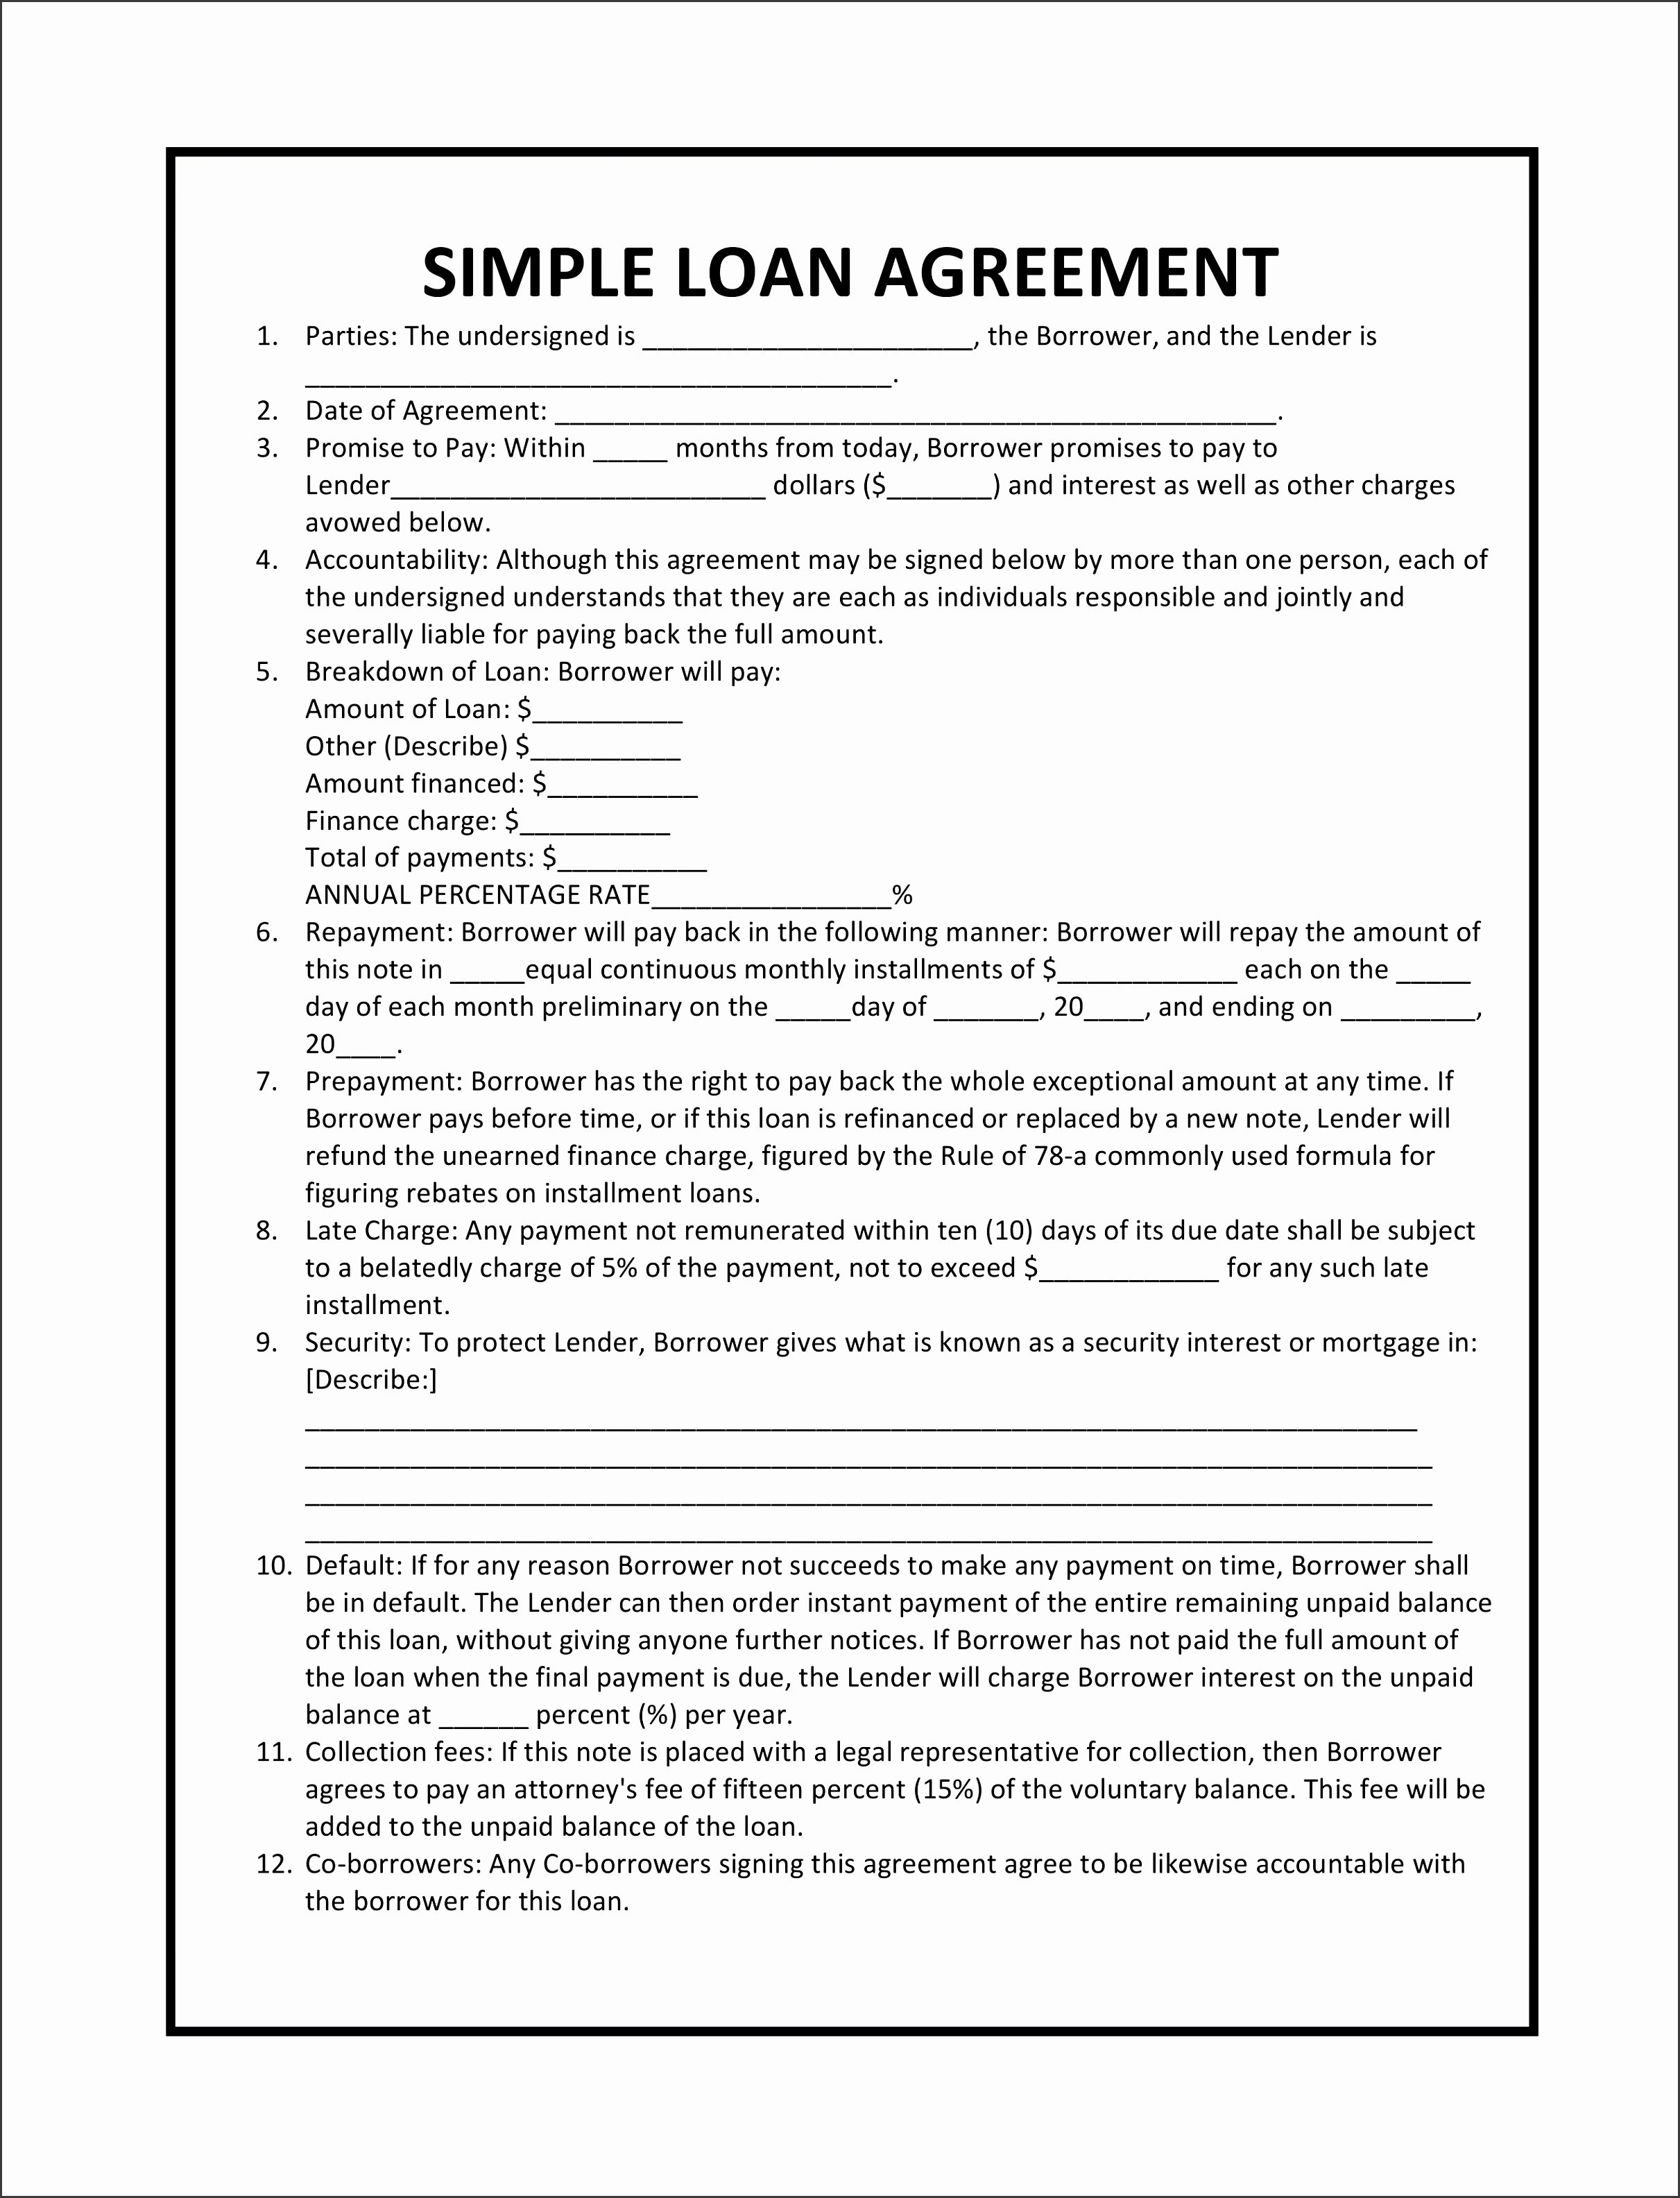 business agreements simple partnership agreement business